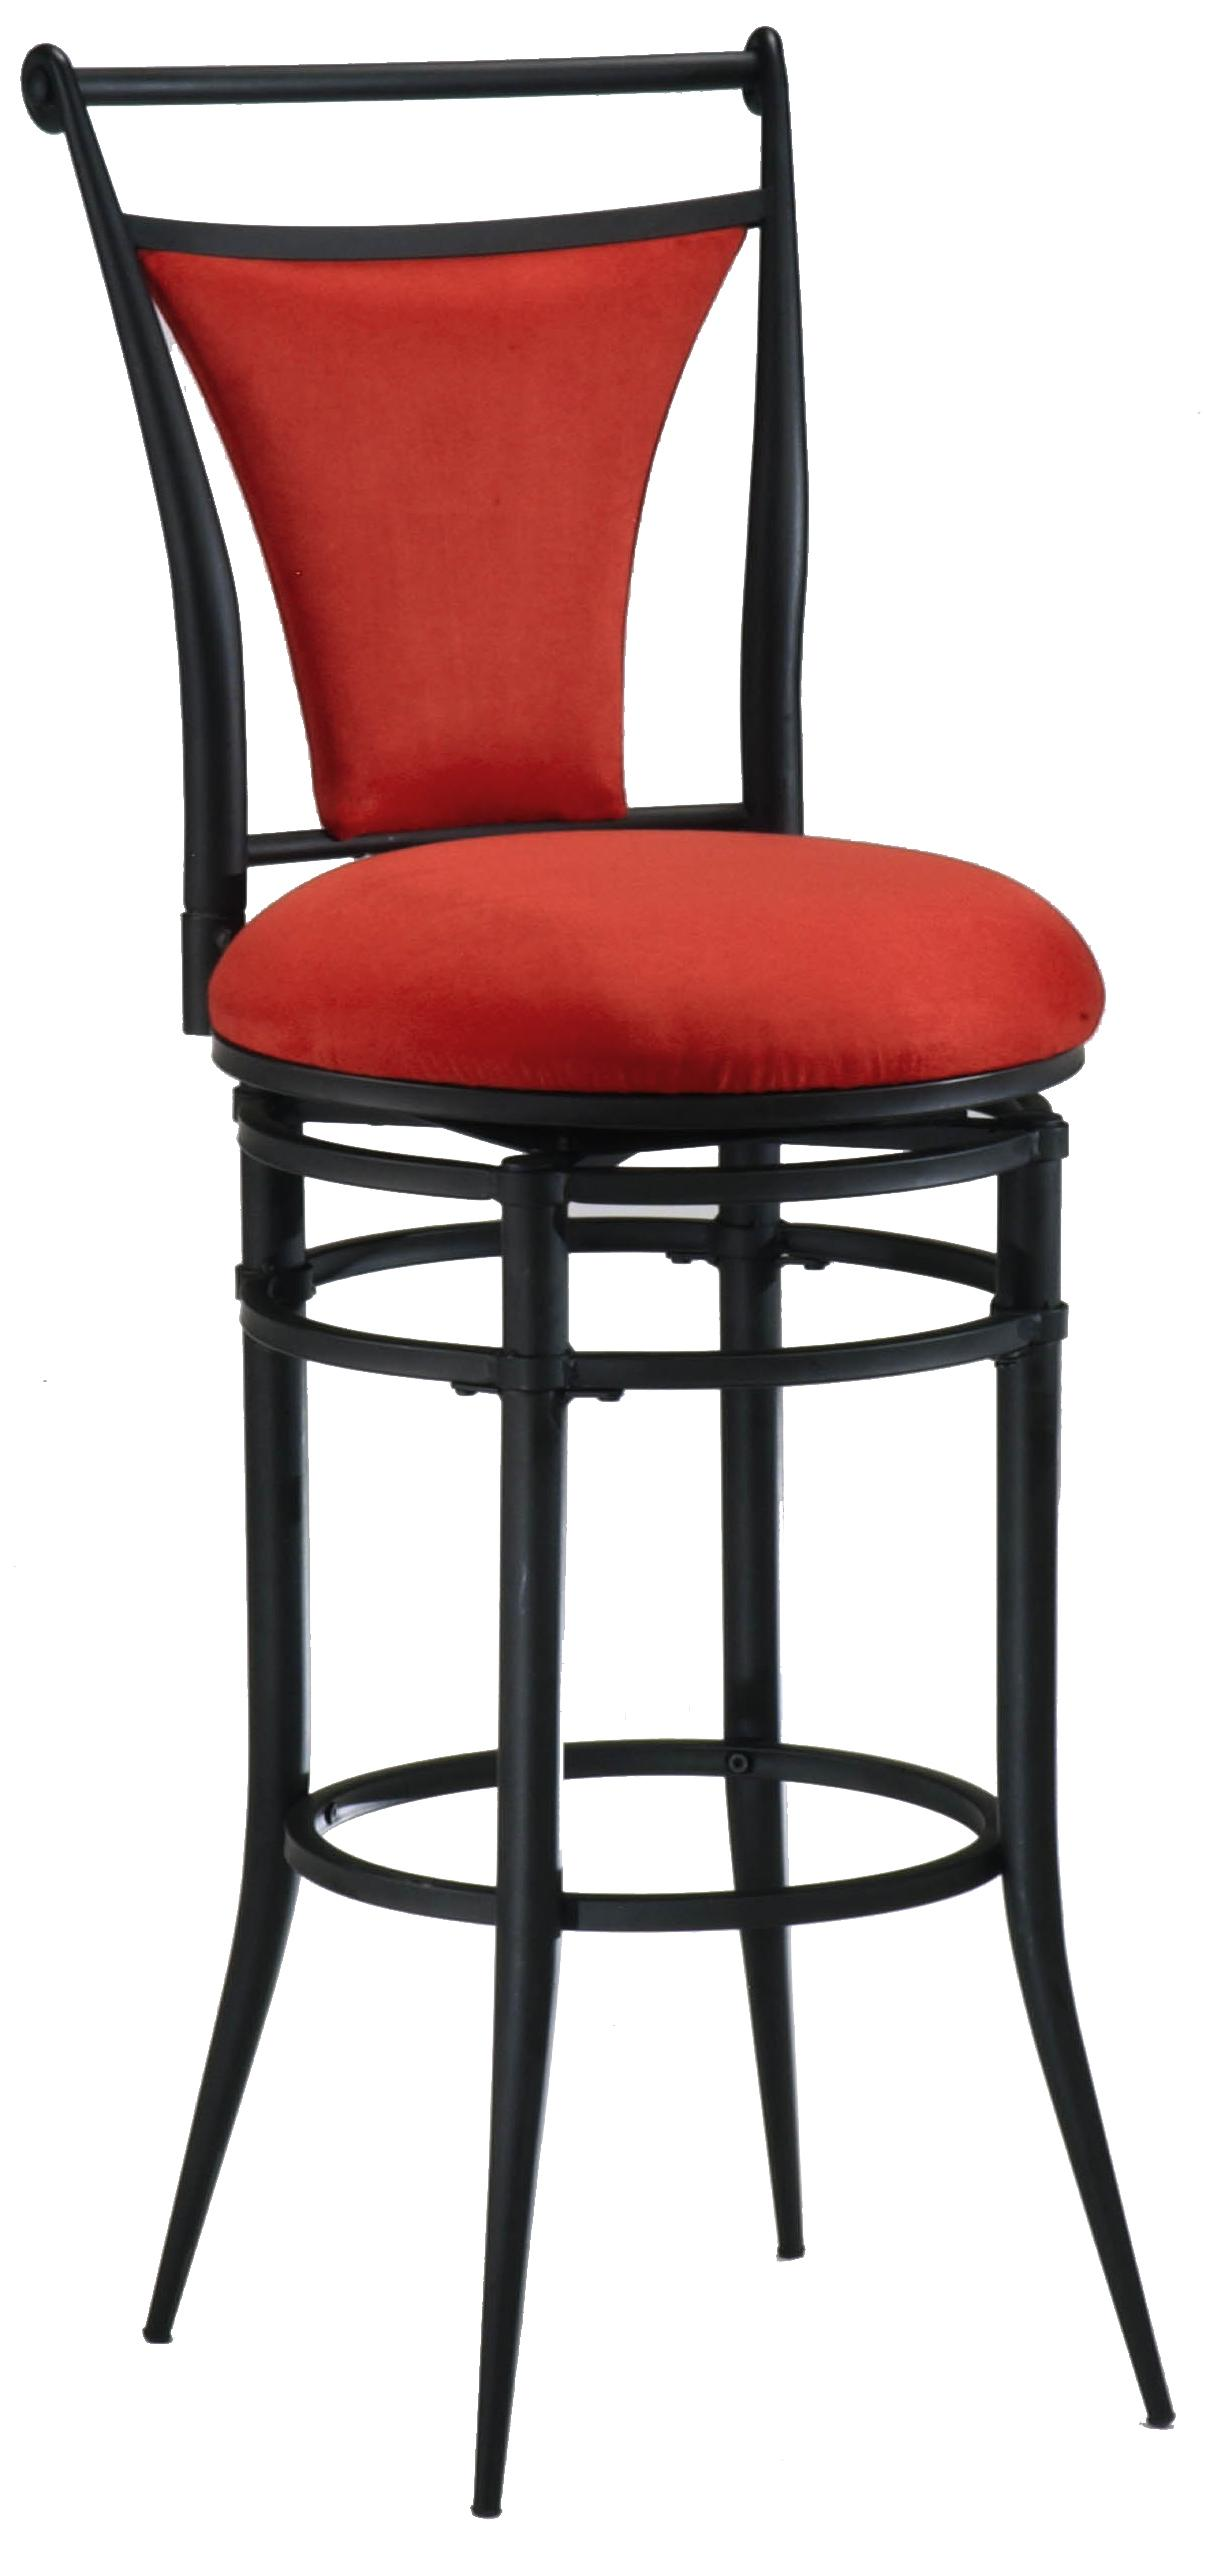 "Hillsdale Metal Stools 26"" Counter Height Flame Cierra Stool - Item Number: 4592-827"